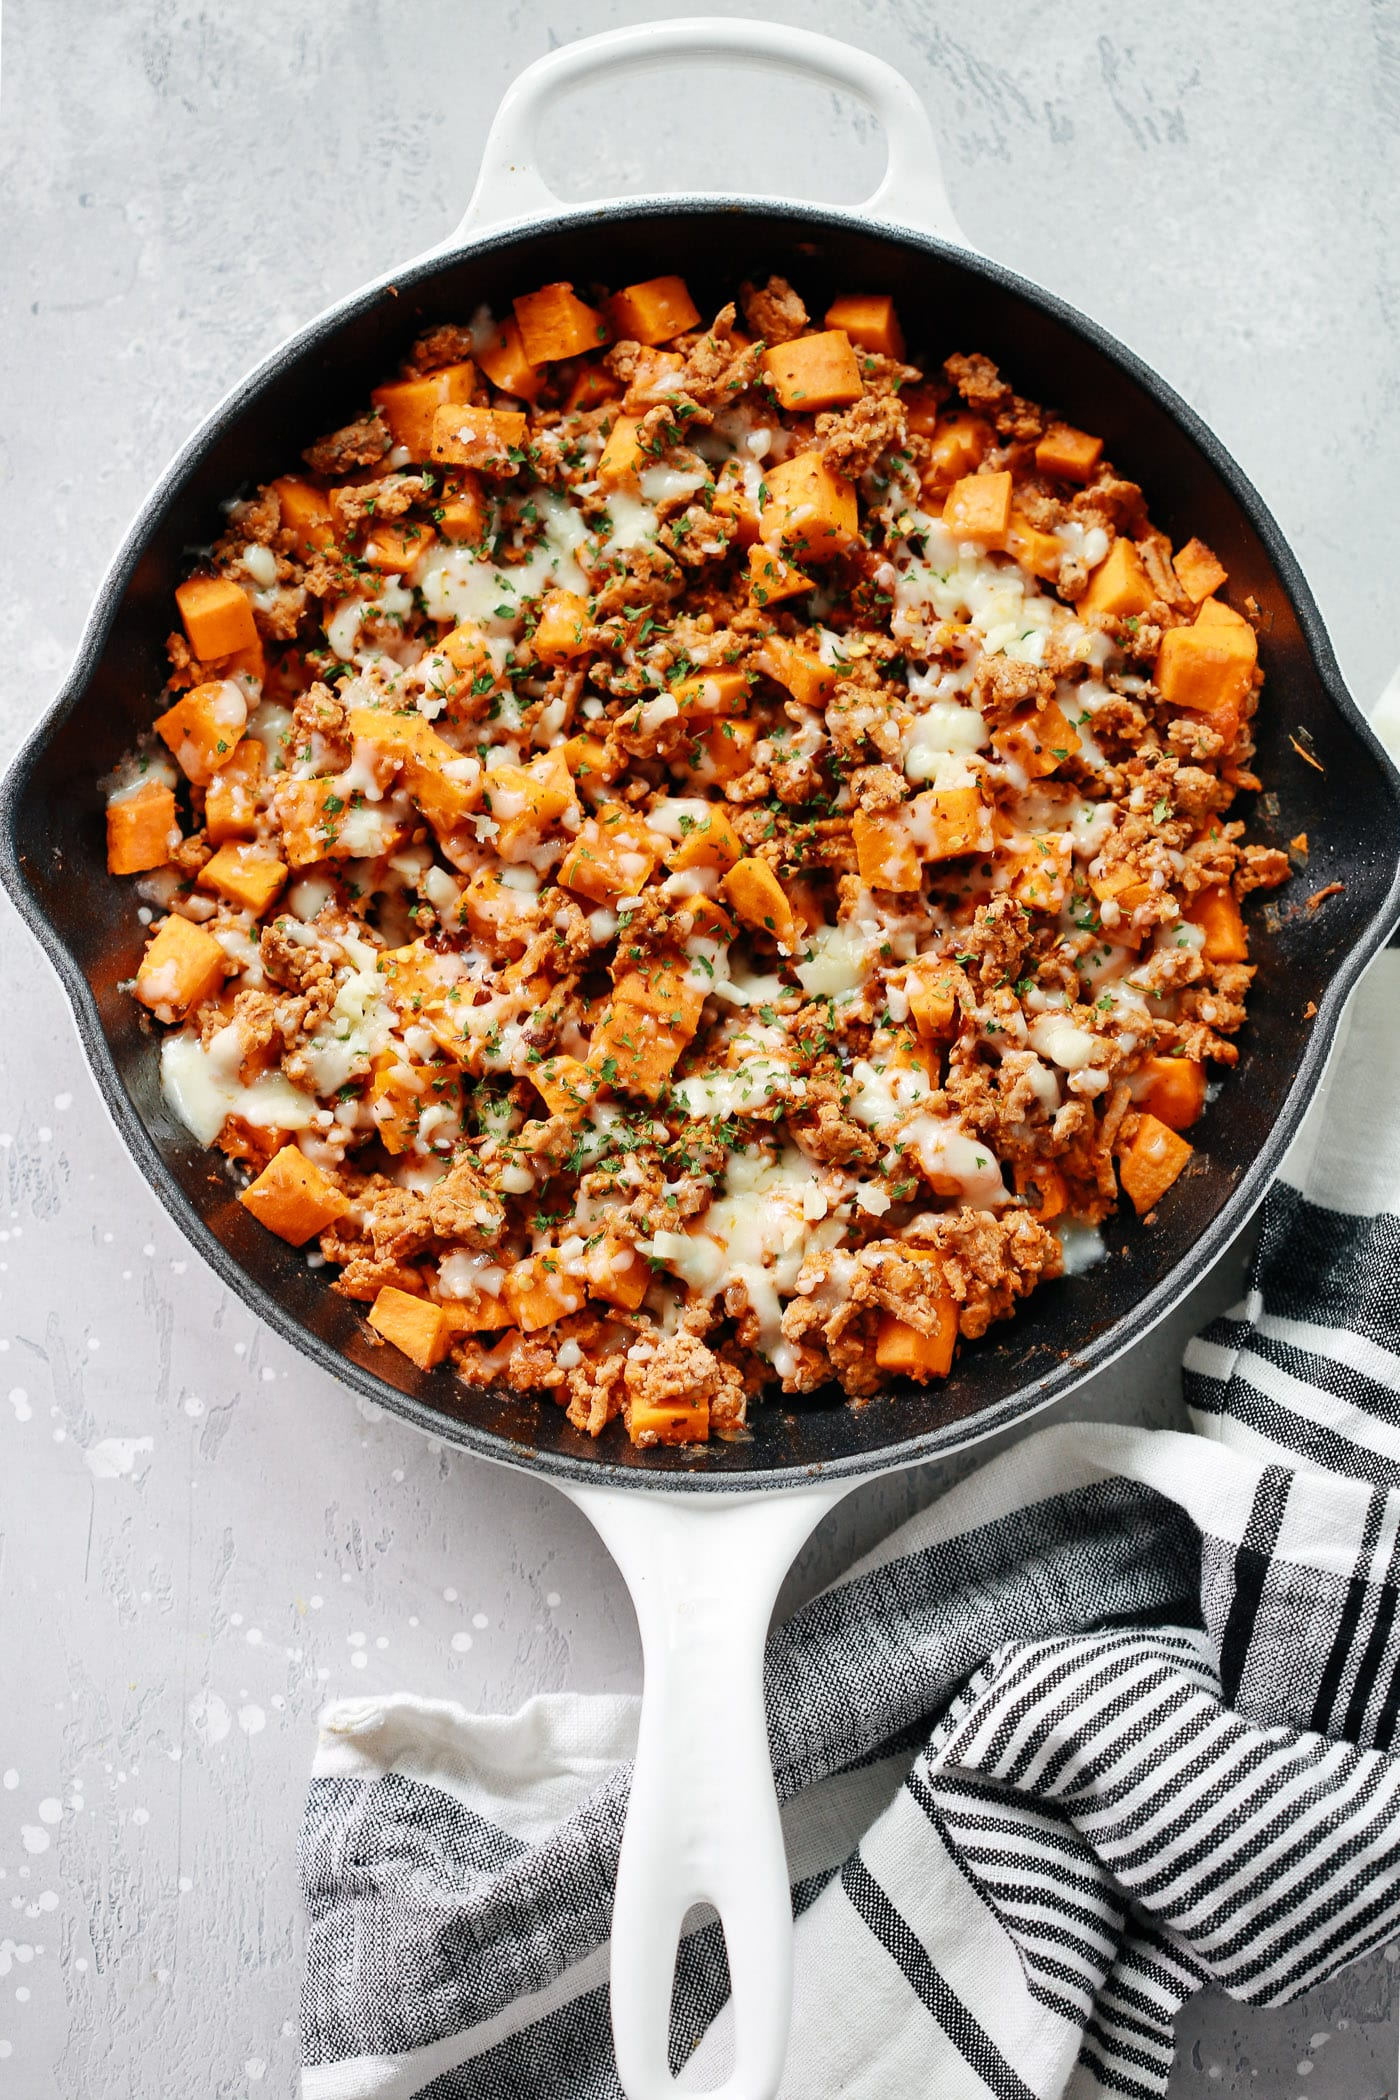 Ground Turkey Sweet Potato Skillet - a delicious gluten free skillet dish